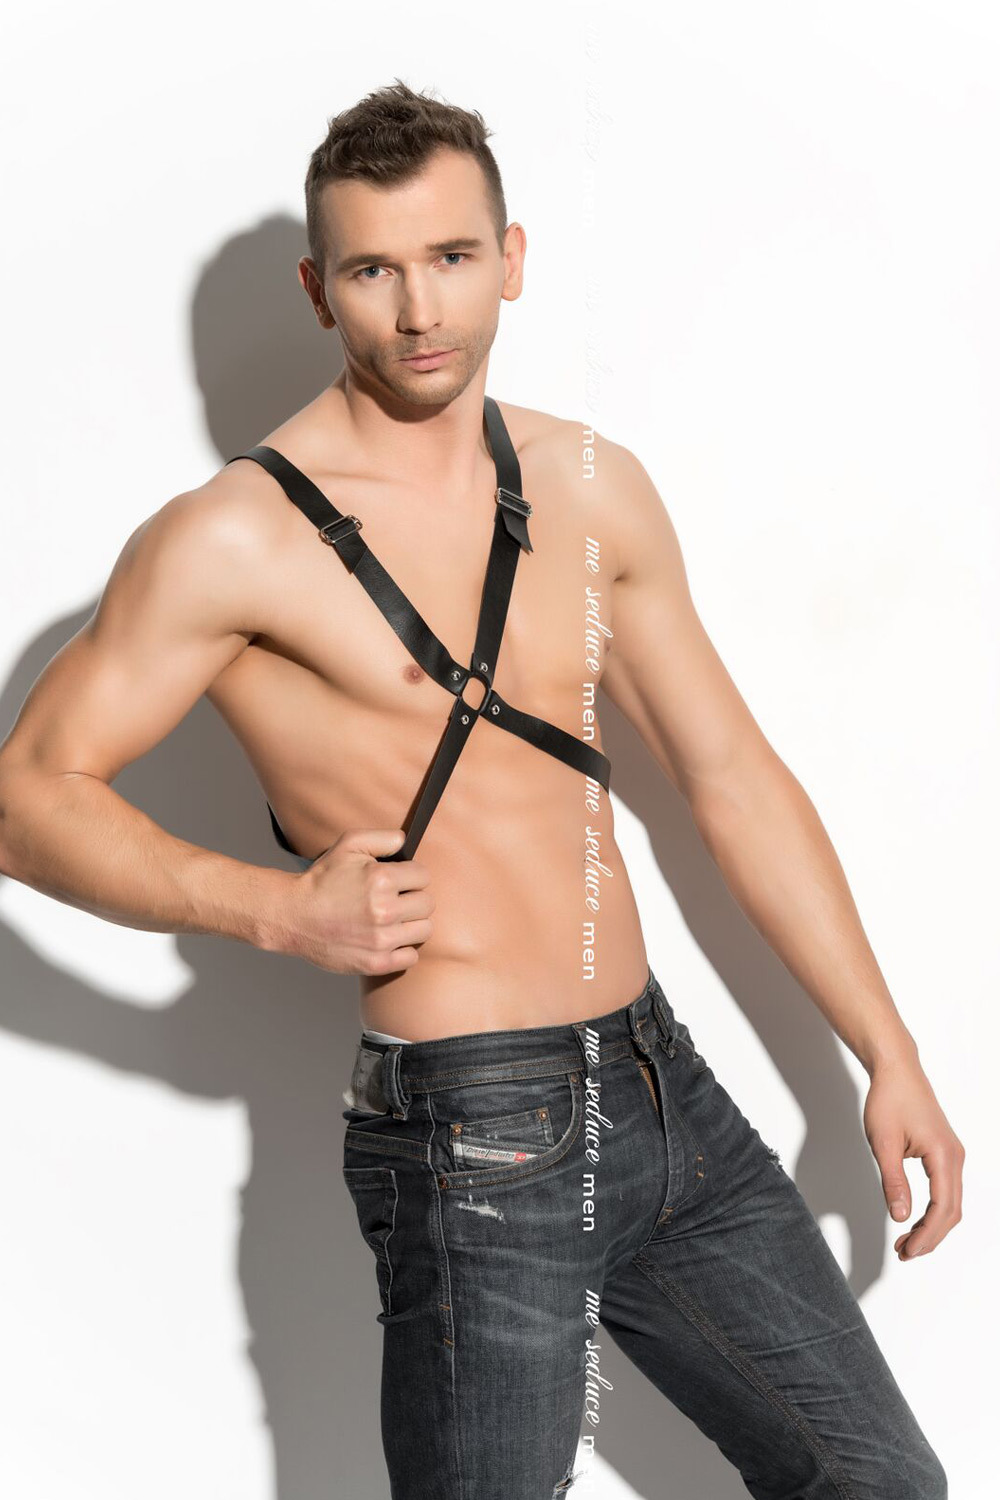 mes_harness_man_04_1